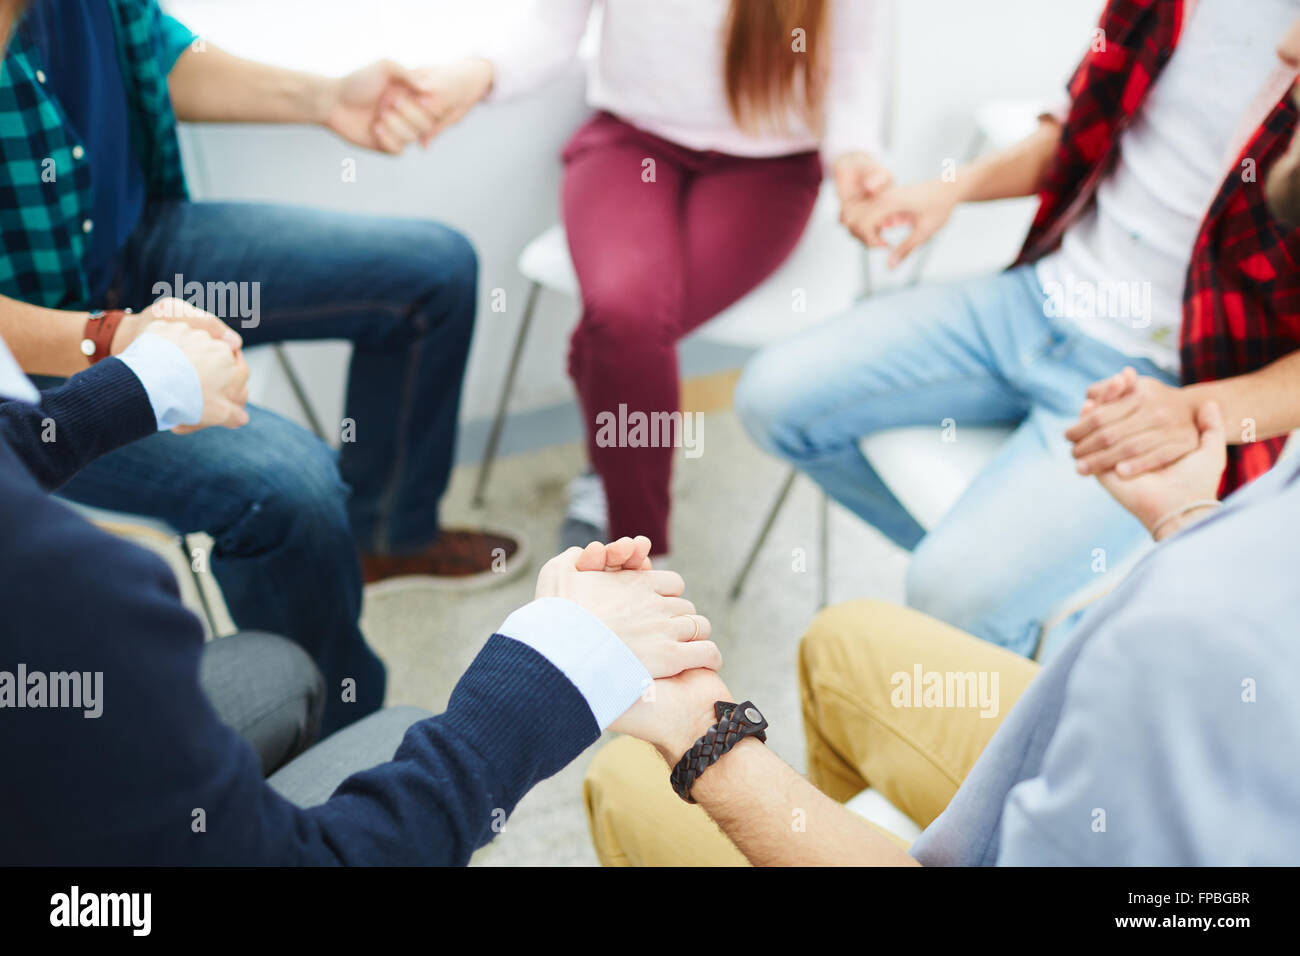 Group of people sitting in circle and supporting each other - Stock Image